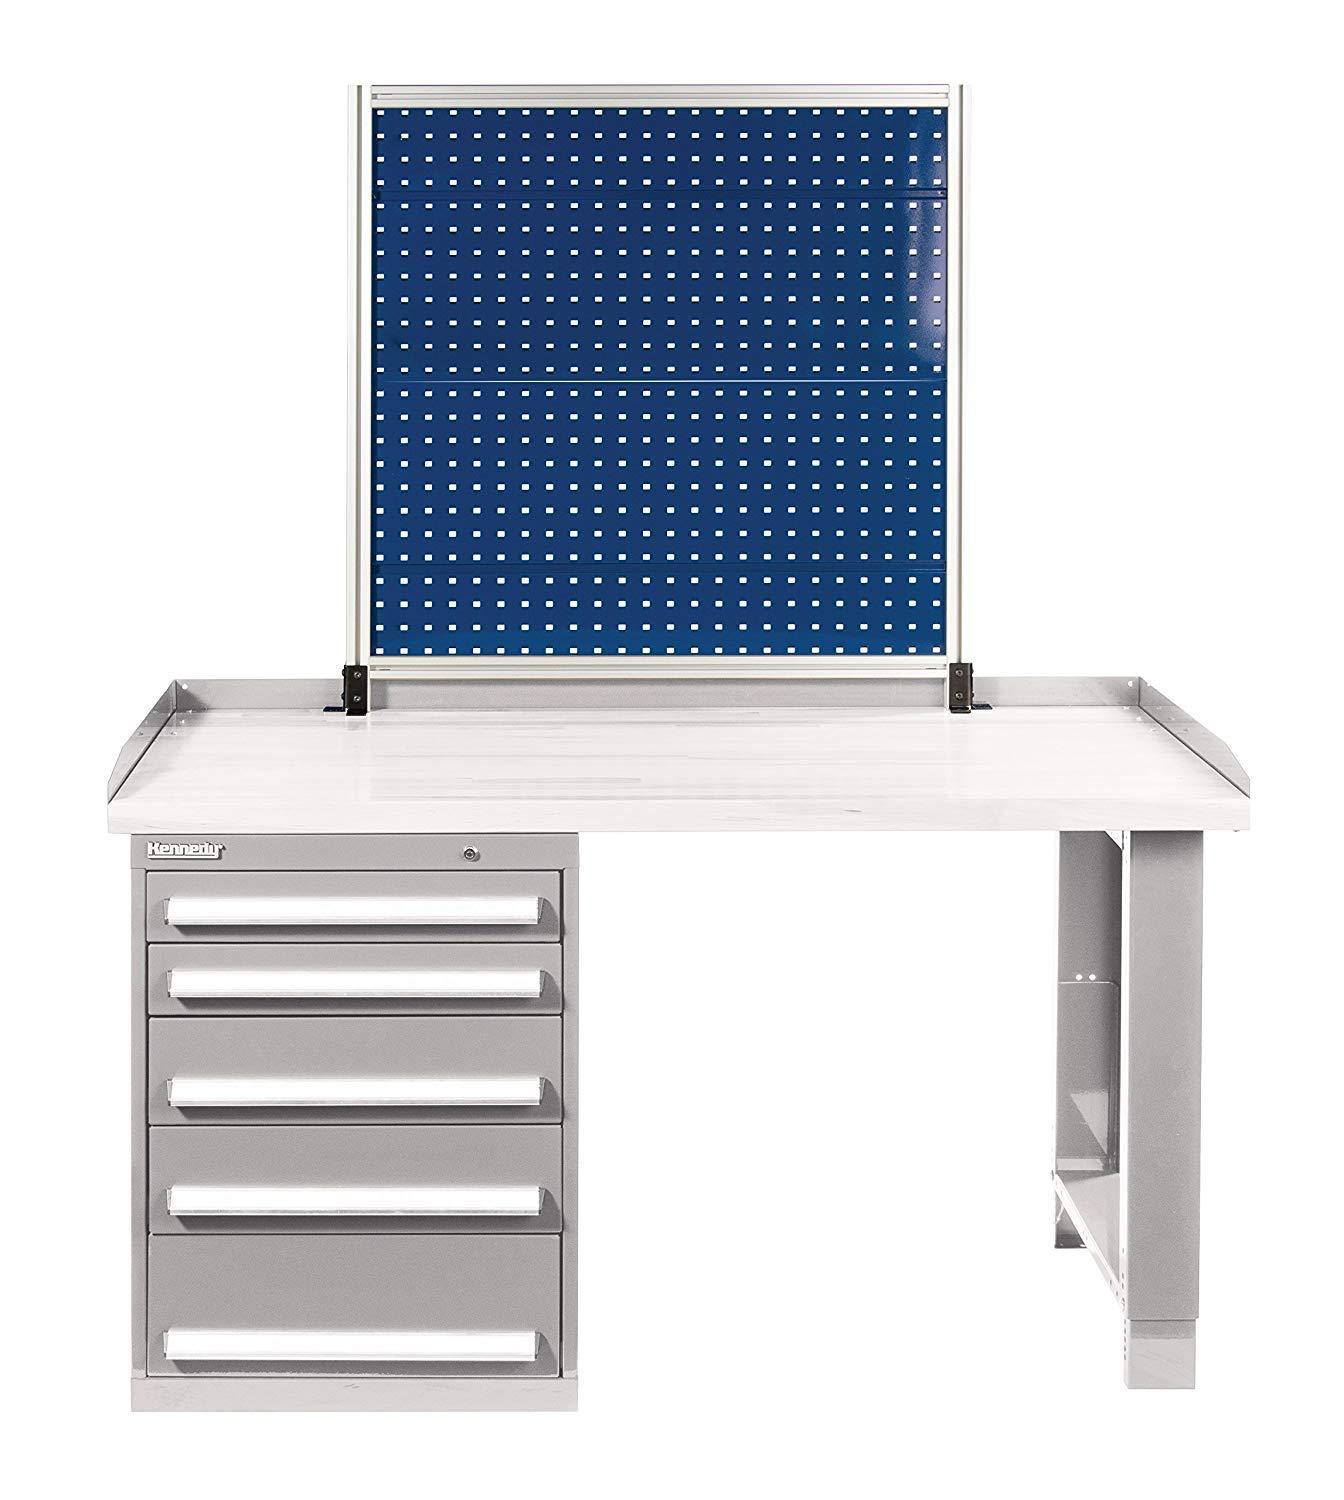 Kennedy Manufacturing 50070BL Kennedy Classic Blue Bench-Mount Pegboard, 39'' x 1-1/2'' x 40'', 40'' Height, 39'' Wide, 1.5'' Length, Pounds